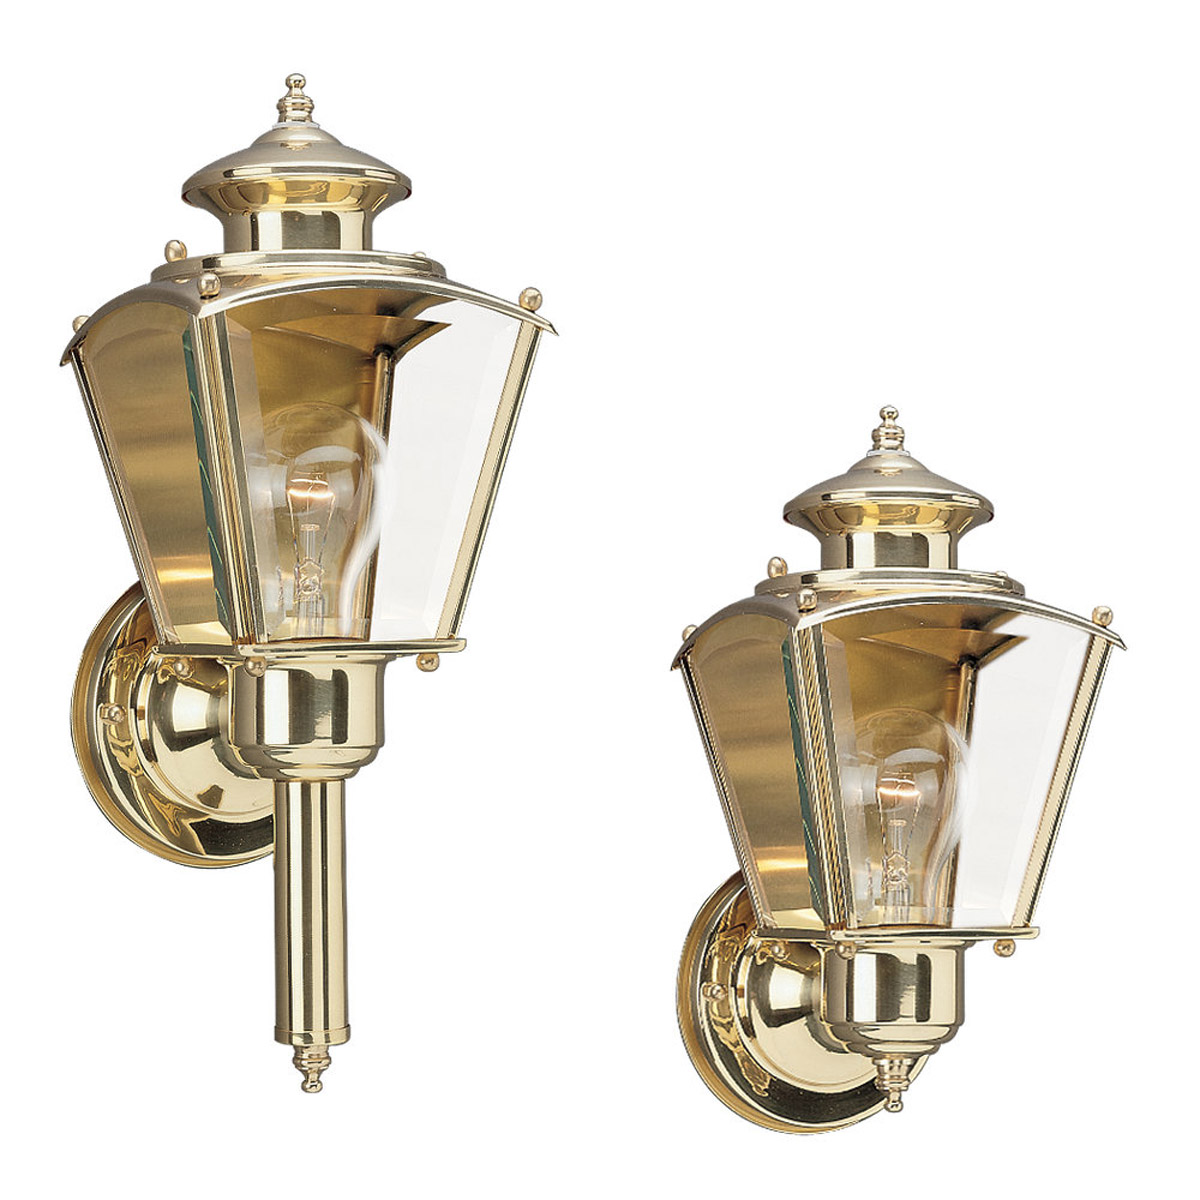 Sea Gull Lighting New Castle 1 Light Outdoor Wall Lantern in Polished Brass 8503-02 photo